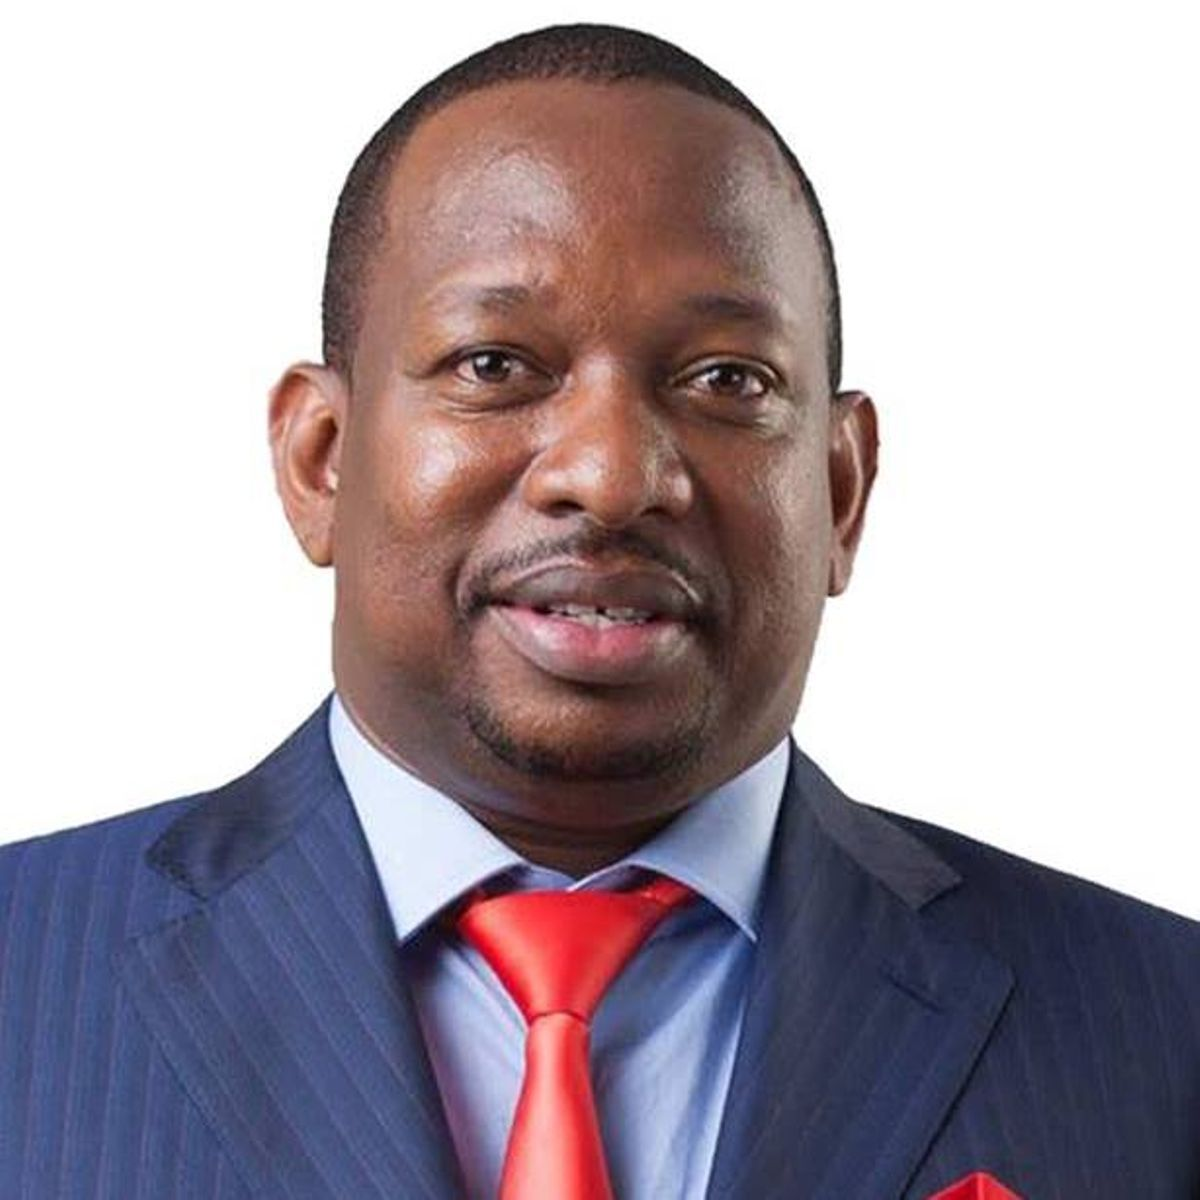 Let's show some love to Governor Mike Sonko. #GovSonkoIsClean